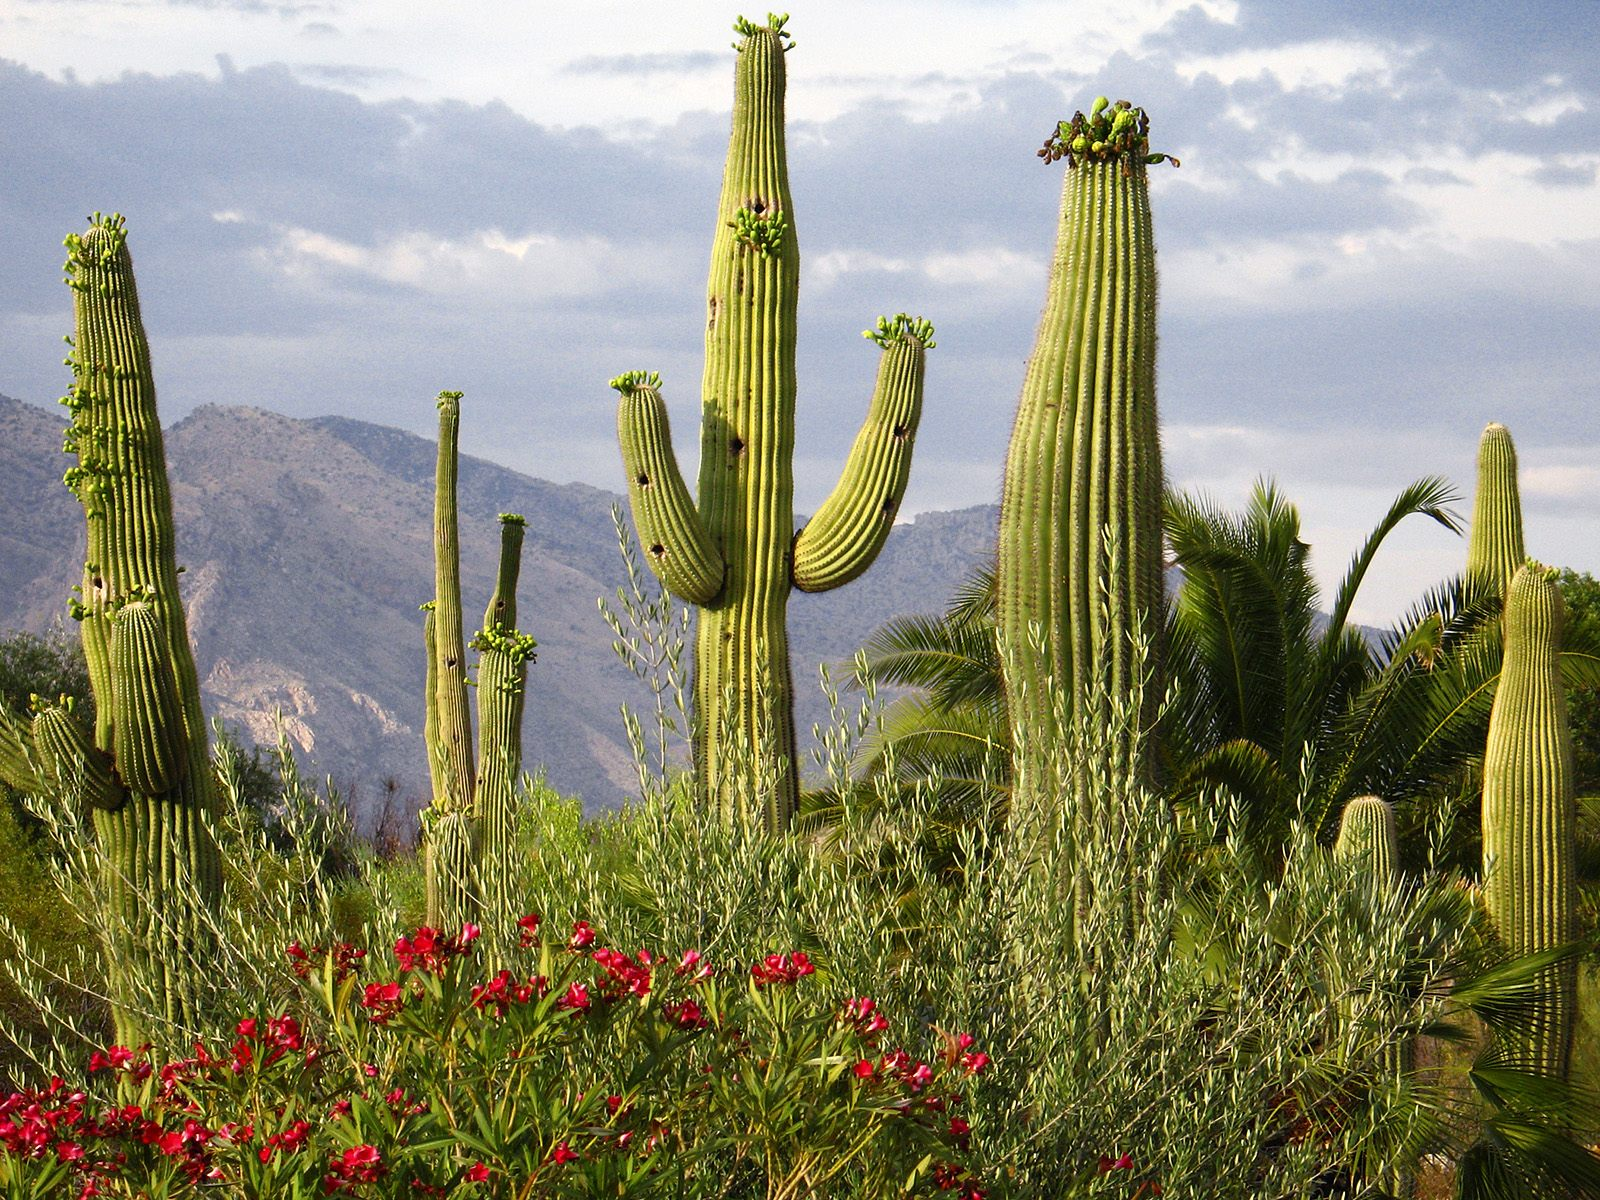 hd cactus wallpapers - photo #20